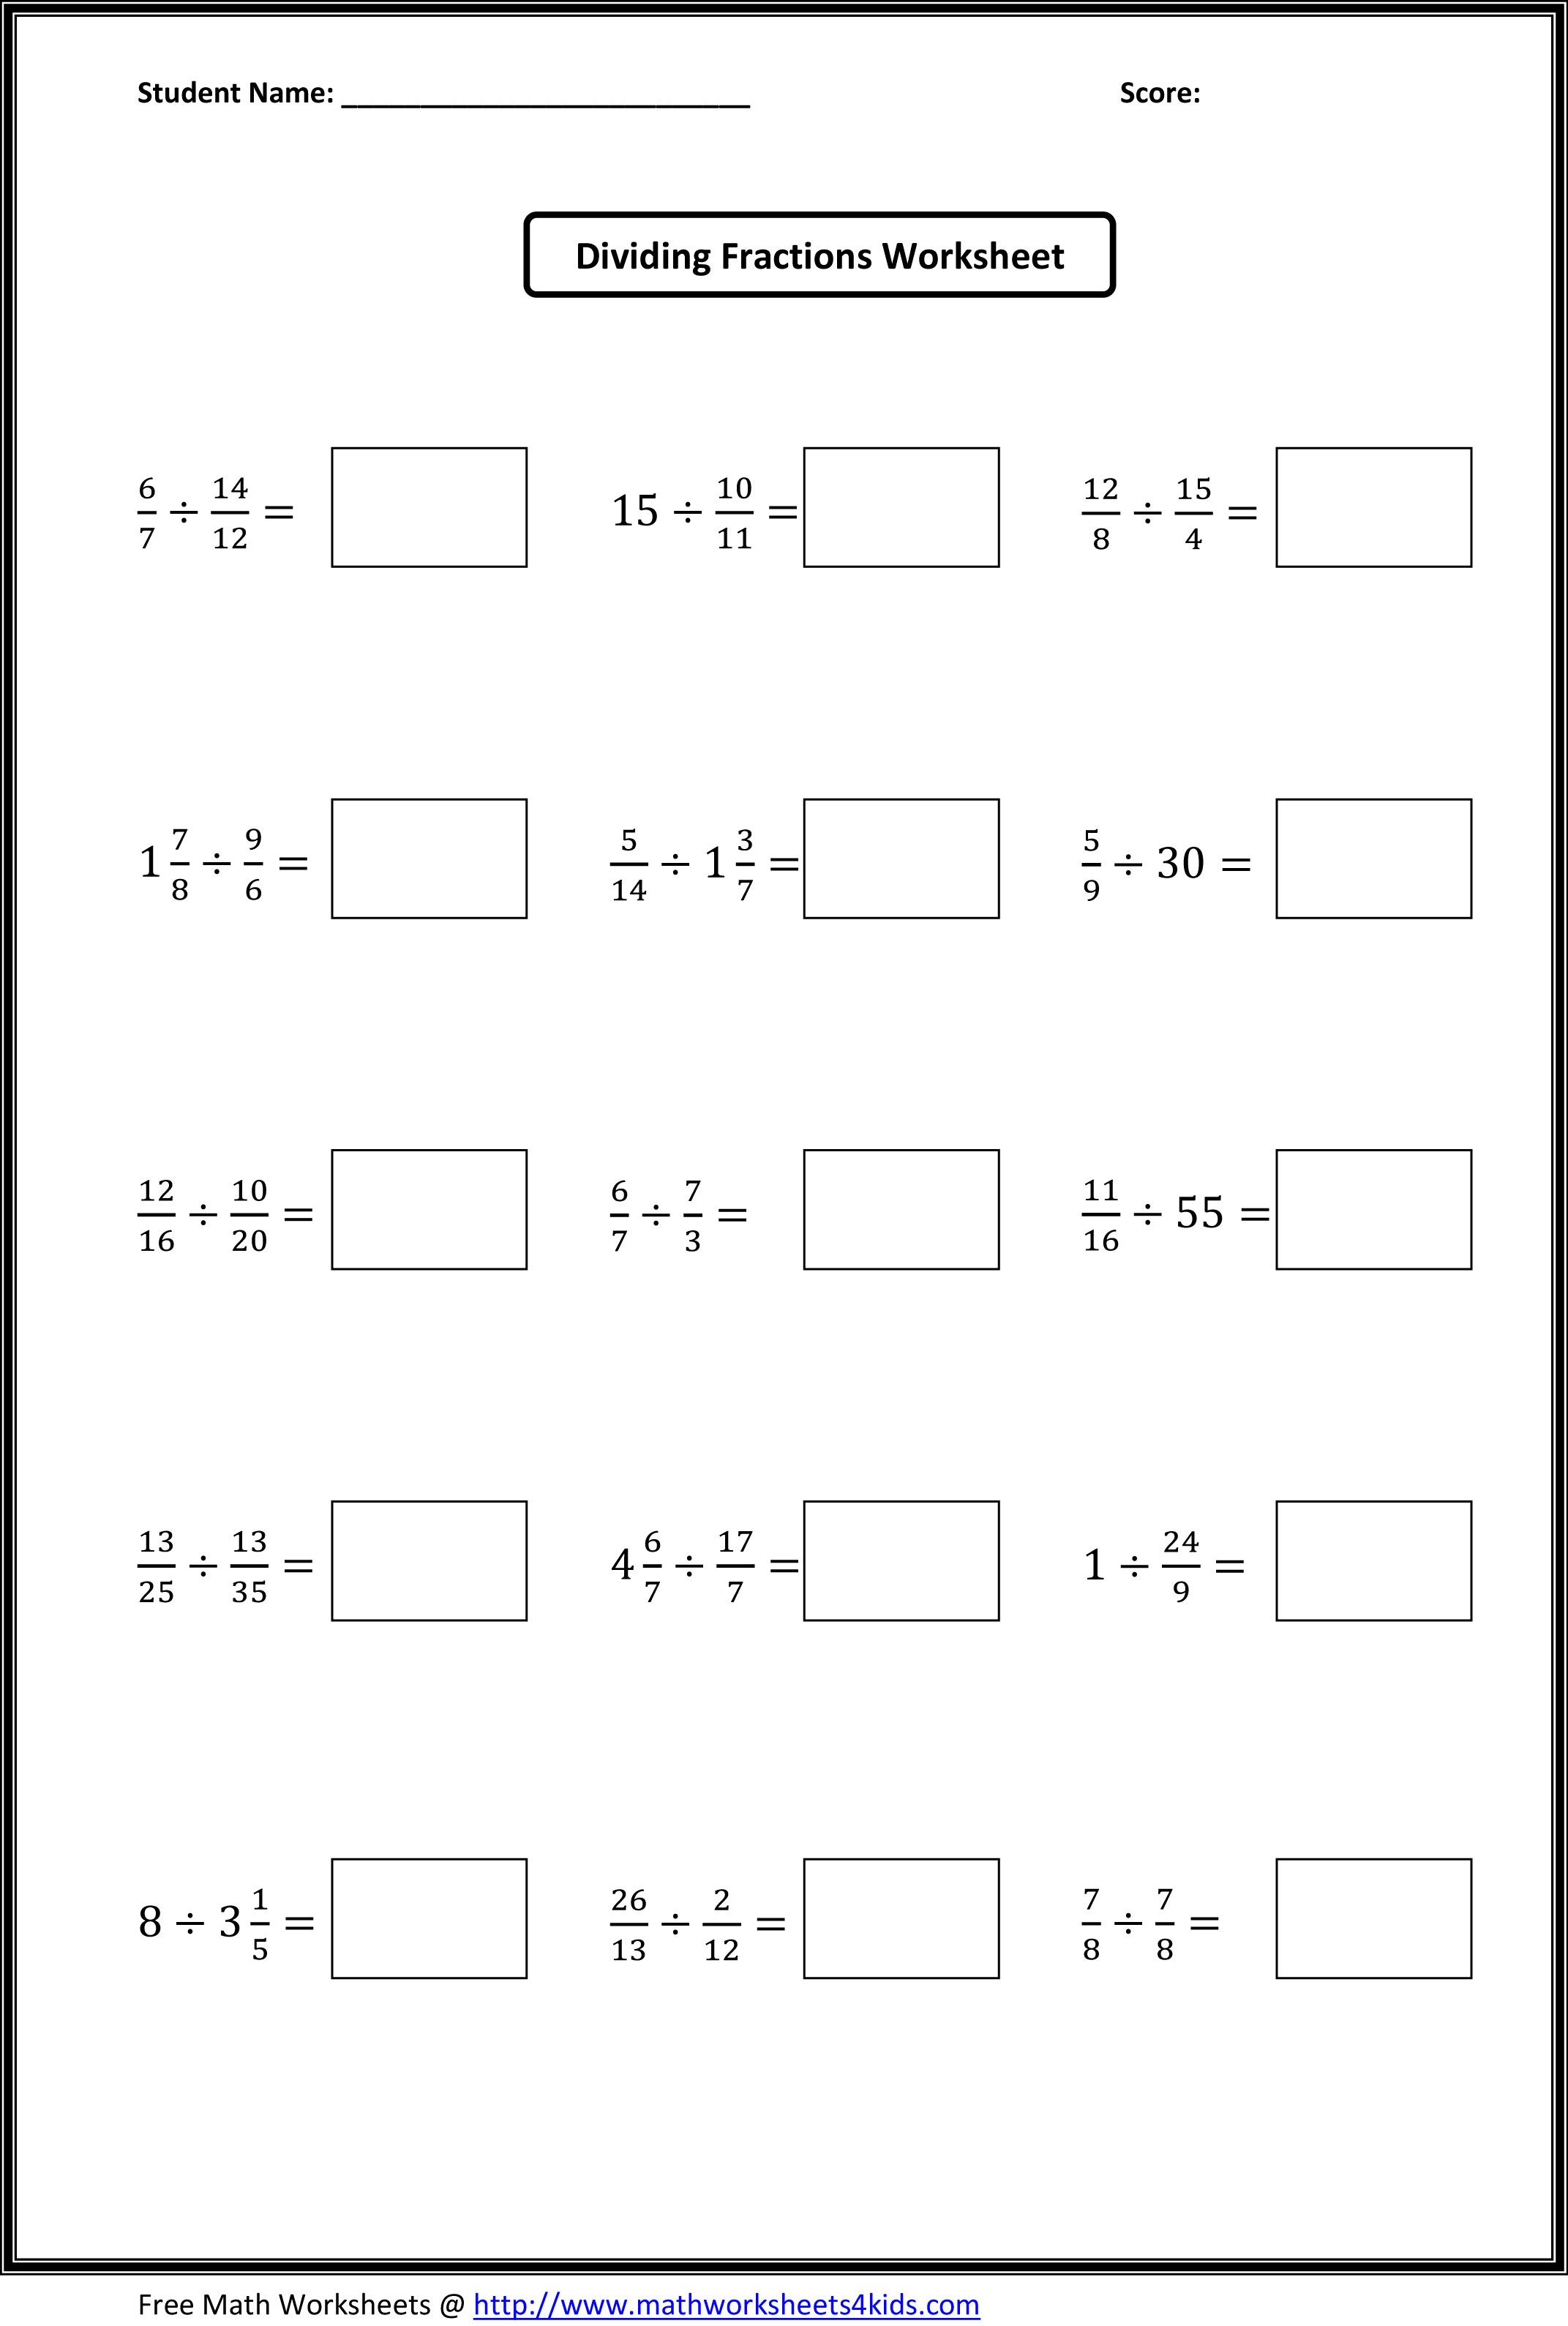 Dividing Fractions Worksheets With Images Fractions Worksheets